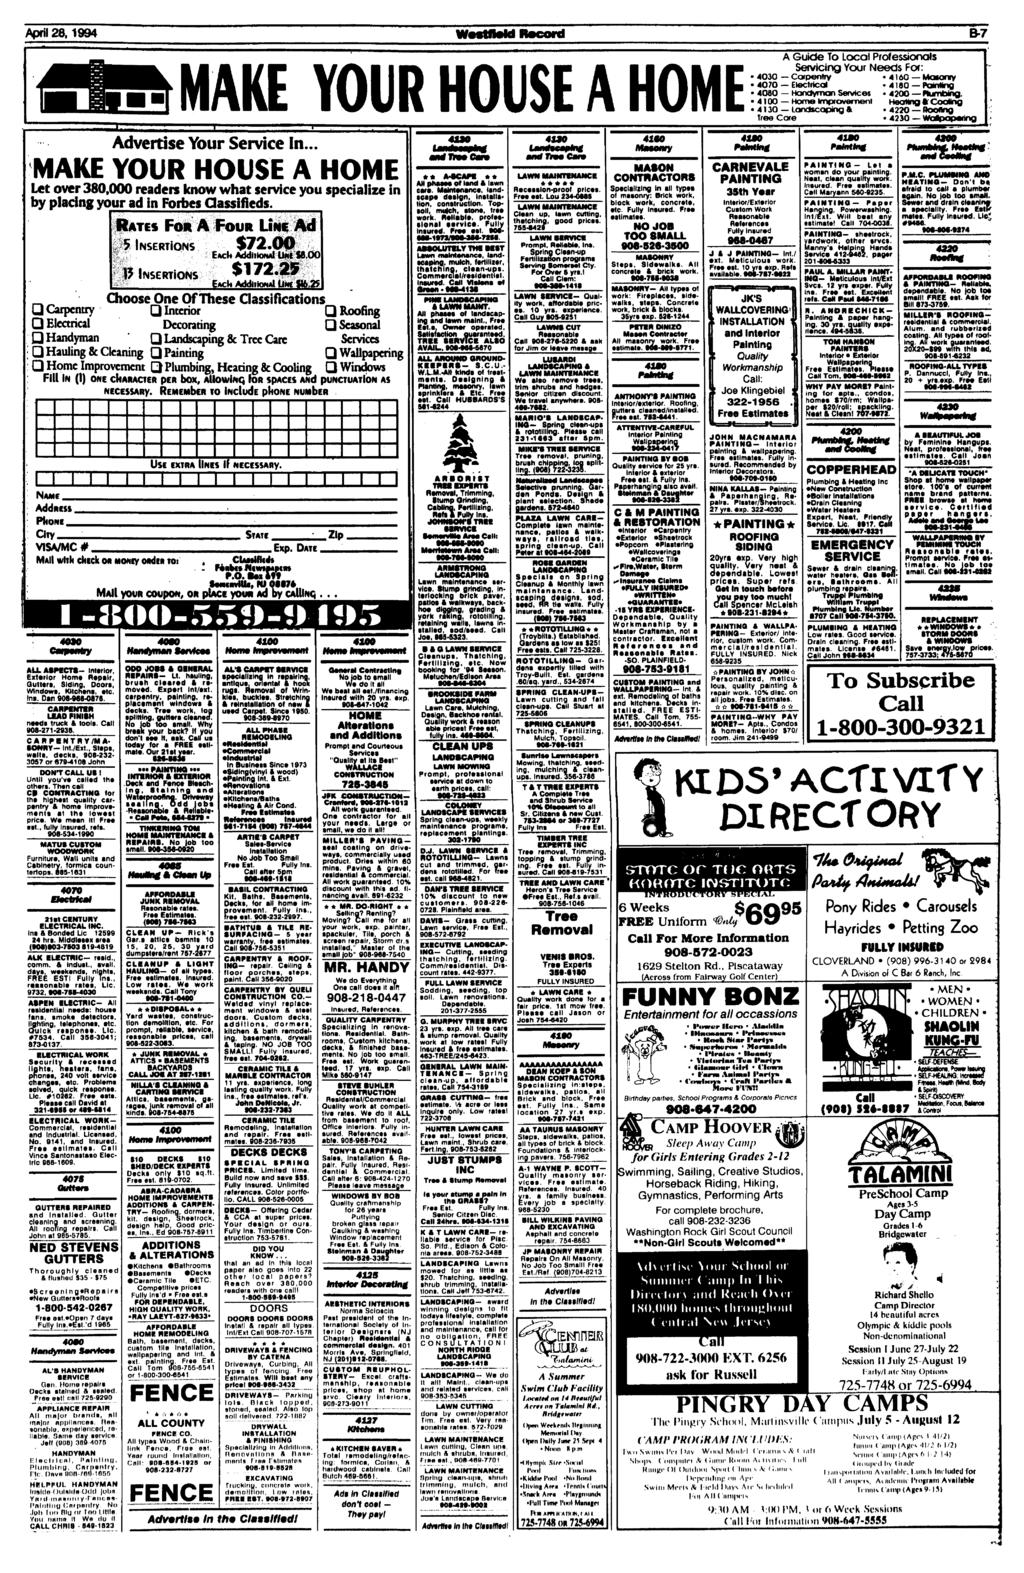 April 28,1994 WeMfftoM Record B-7 Advertise Your Service In... MAKE YOUR HOUSE A HOME Let over 380,000 readers know what service you specialize in by placing your ad in Forbes Classifieds.